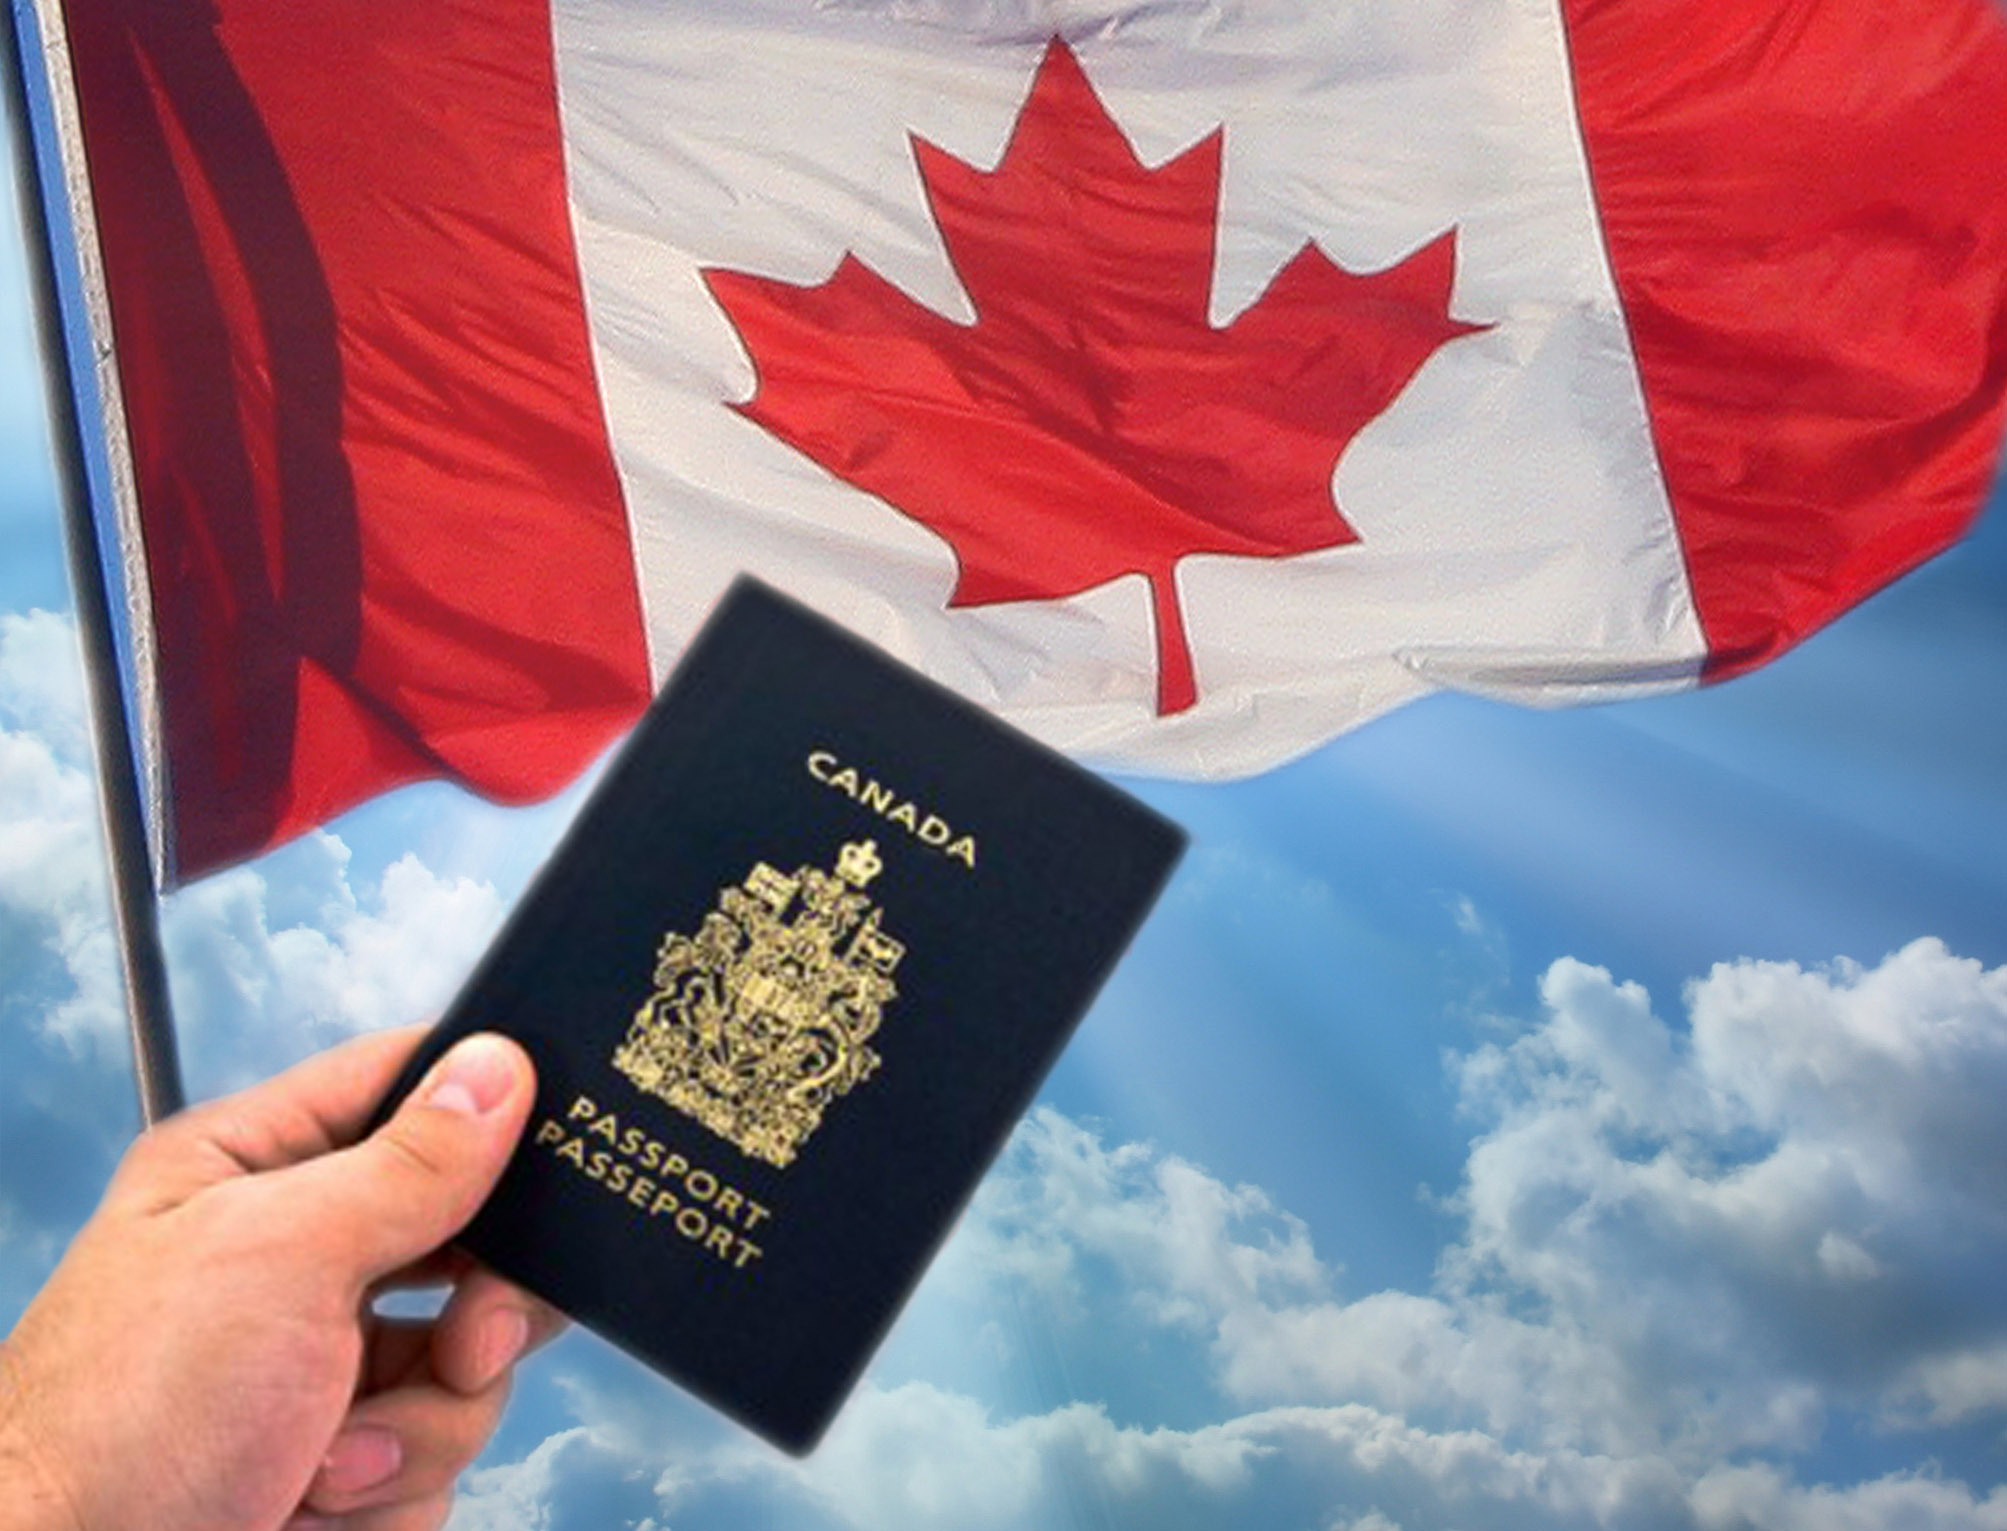 WWICS simplifies getting student visa for Canada